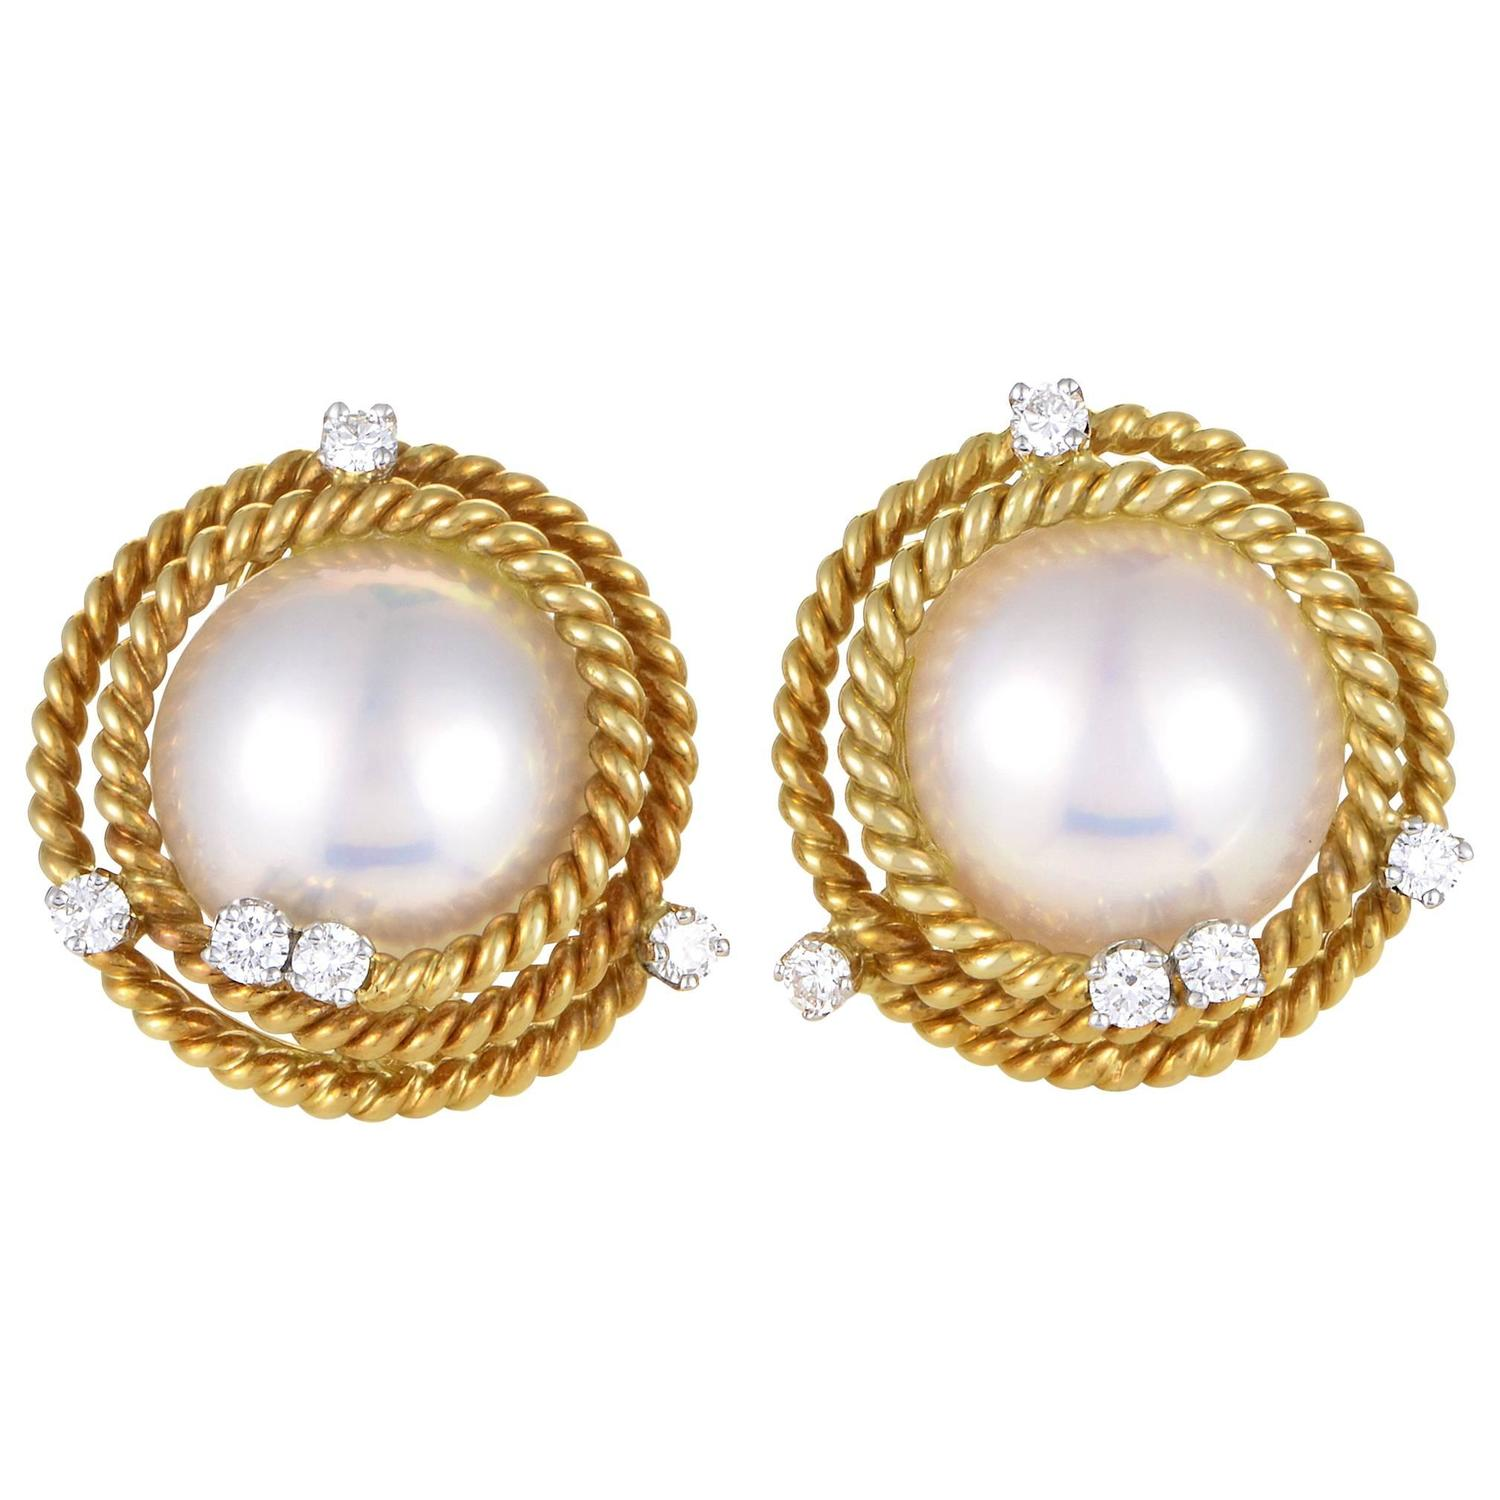 Tiffany and Co Schlumberger Pearl Diamond Gold Earrings at 1stdibs